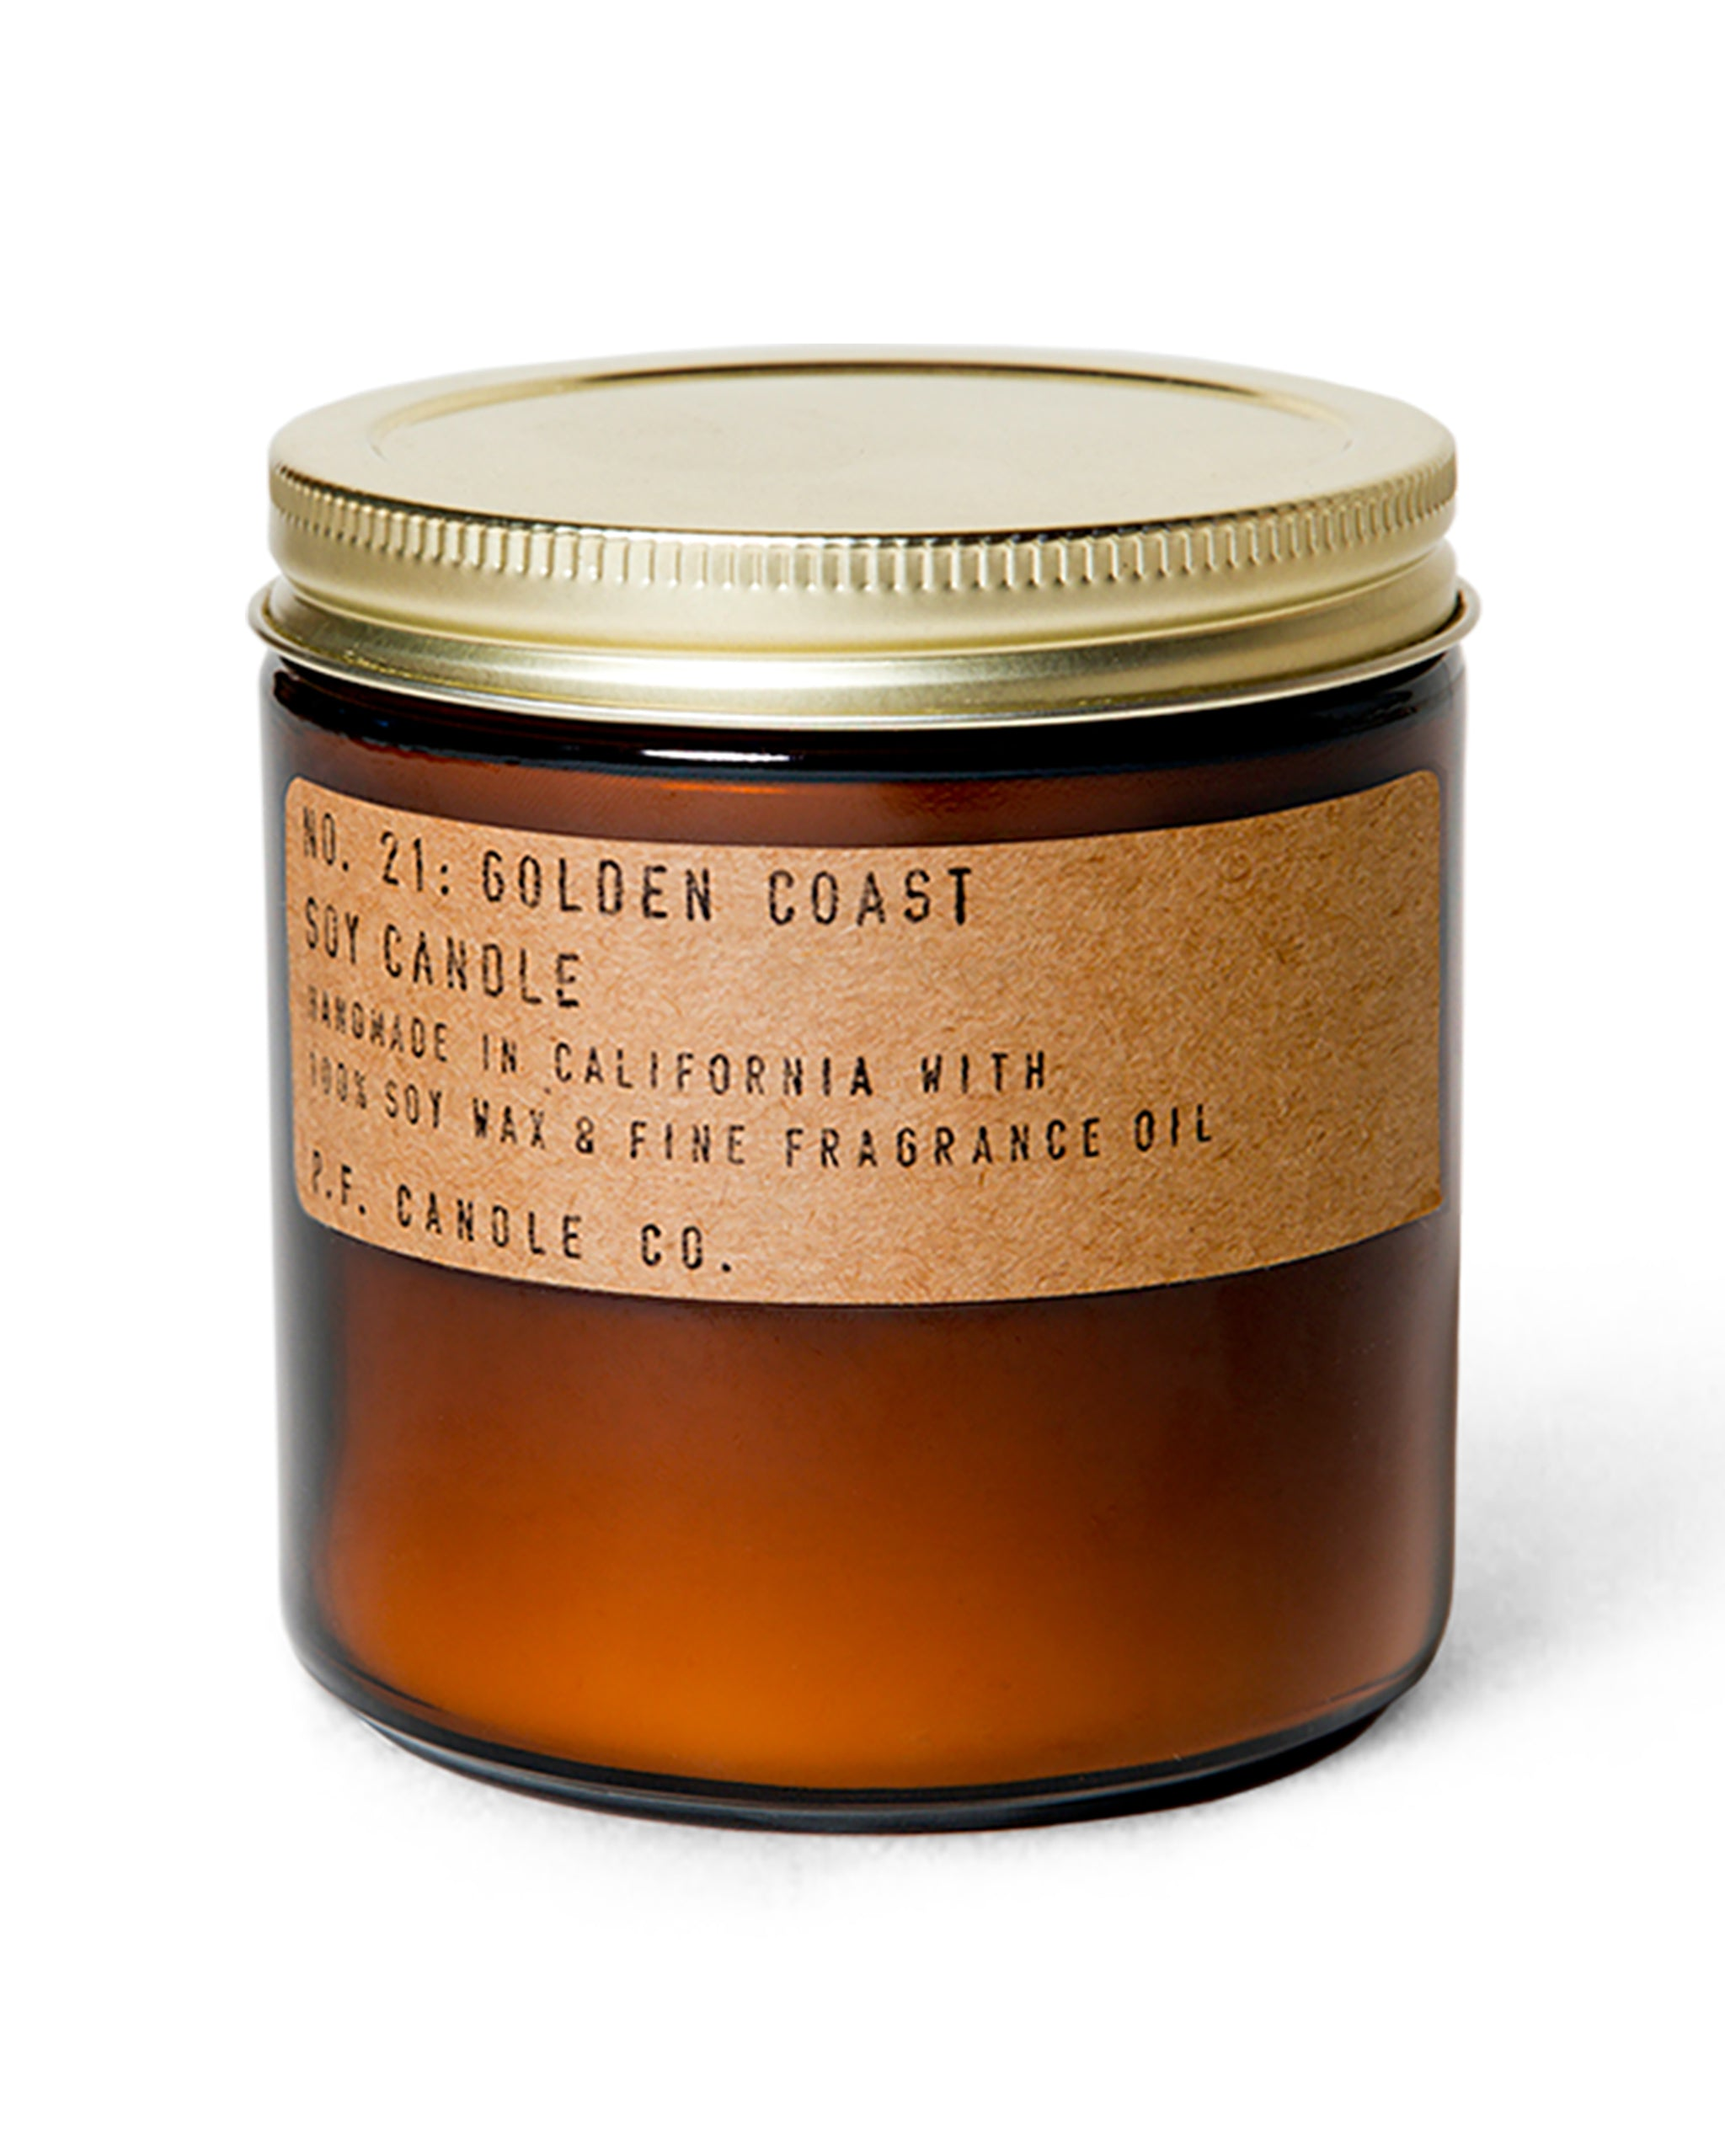 PF Candle Co Golden Coast Candle, 12.5